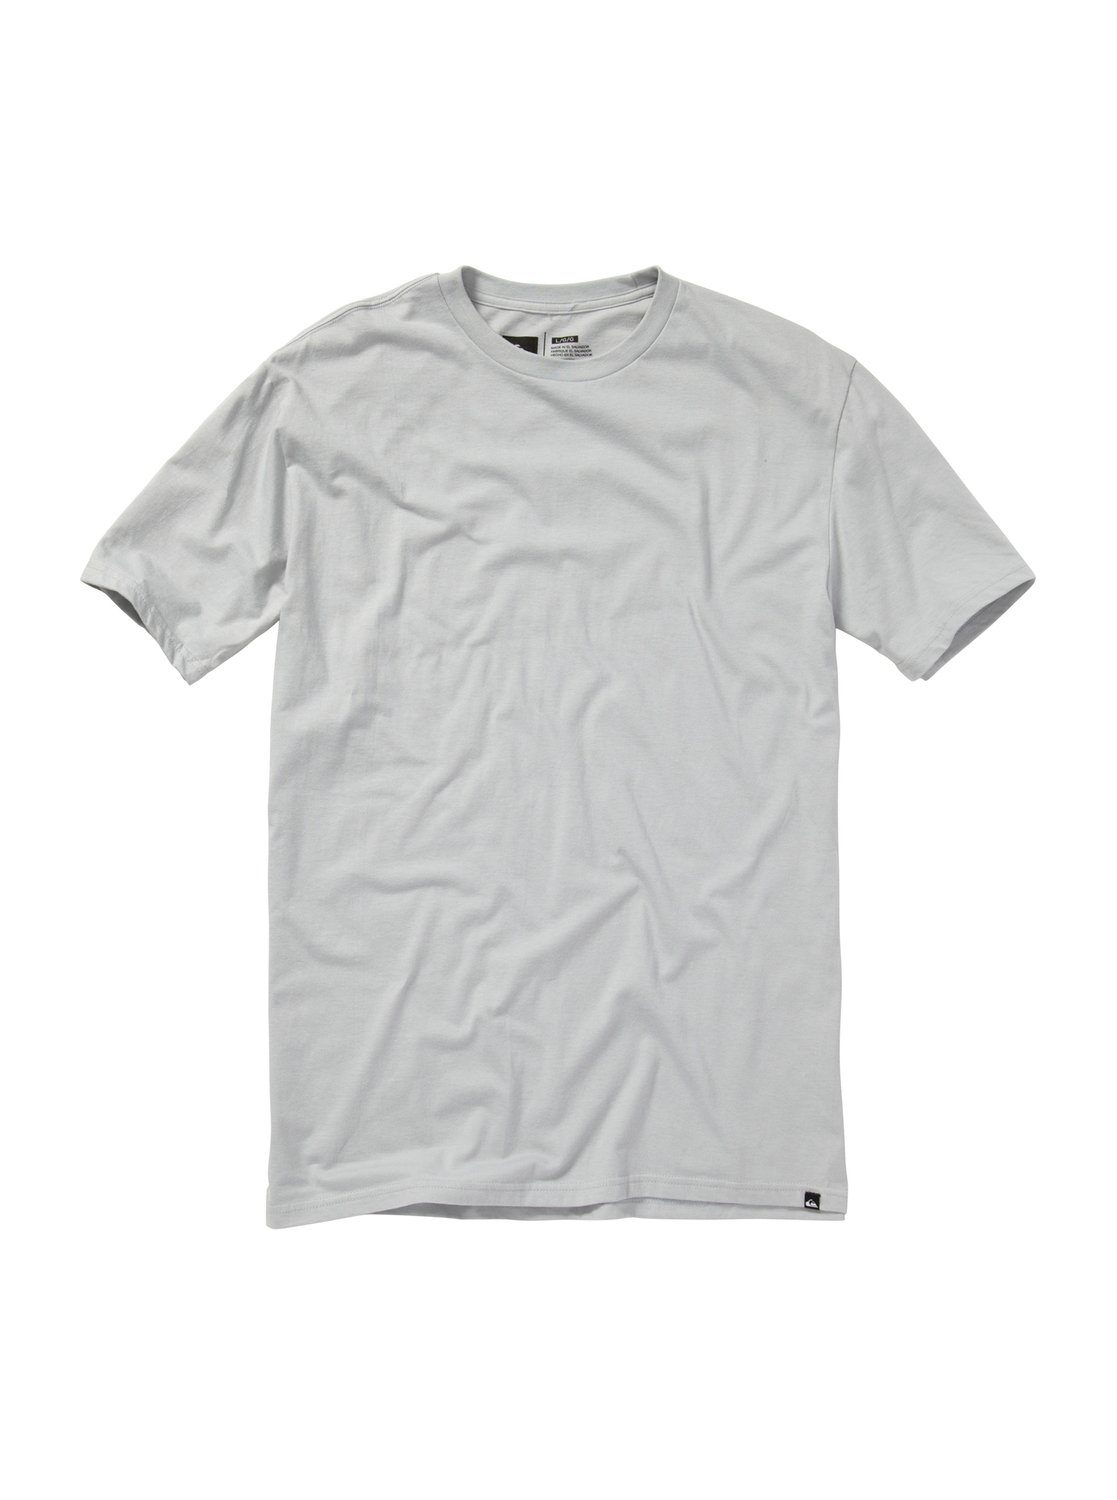 Quiksilver plain black t shirt - 0 Everday Solid Slim Fit T Shirt Aqyzt01121 Quiksilver